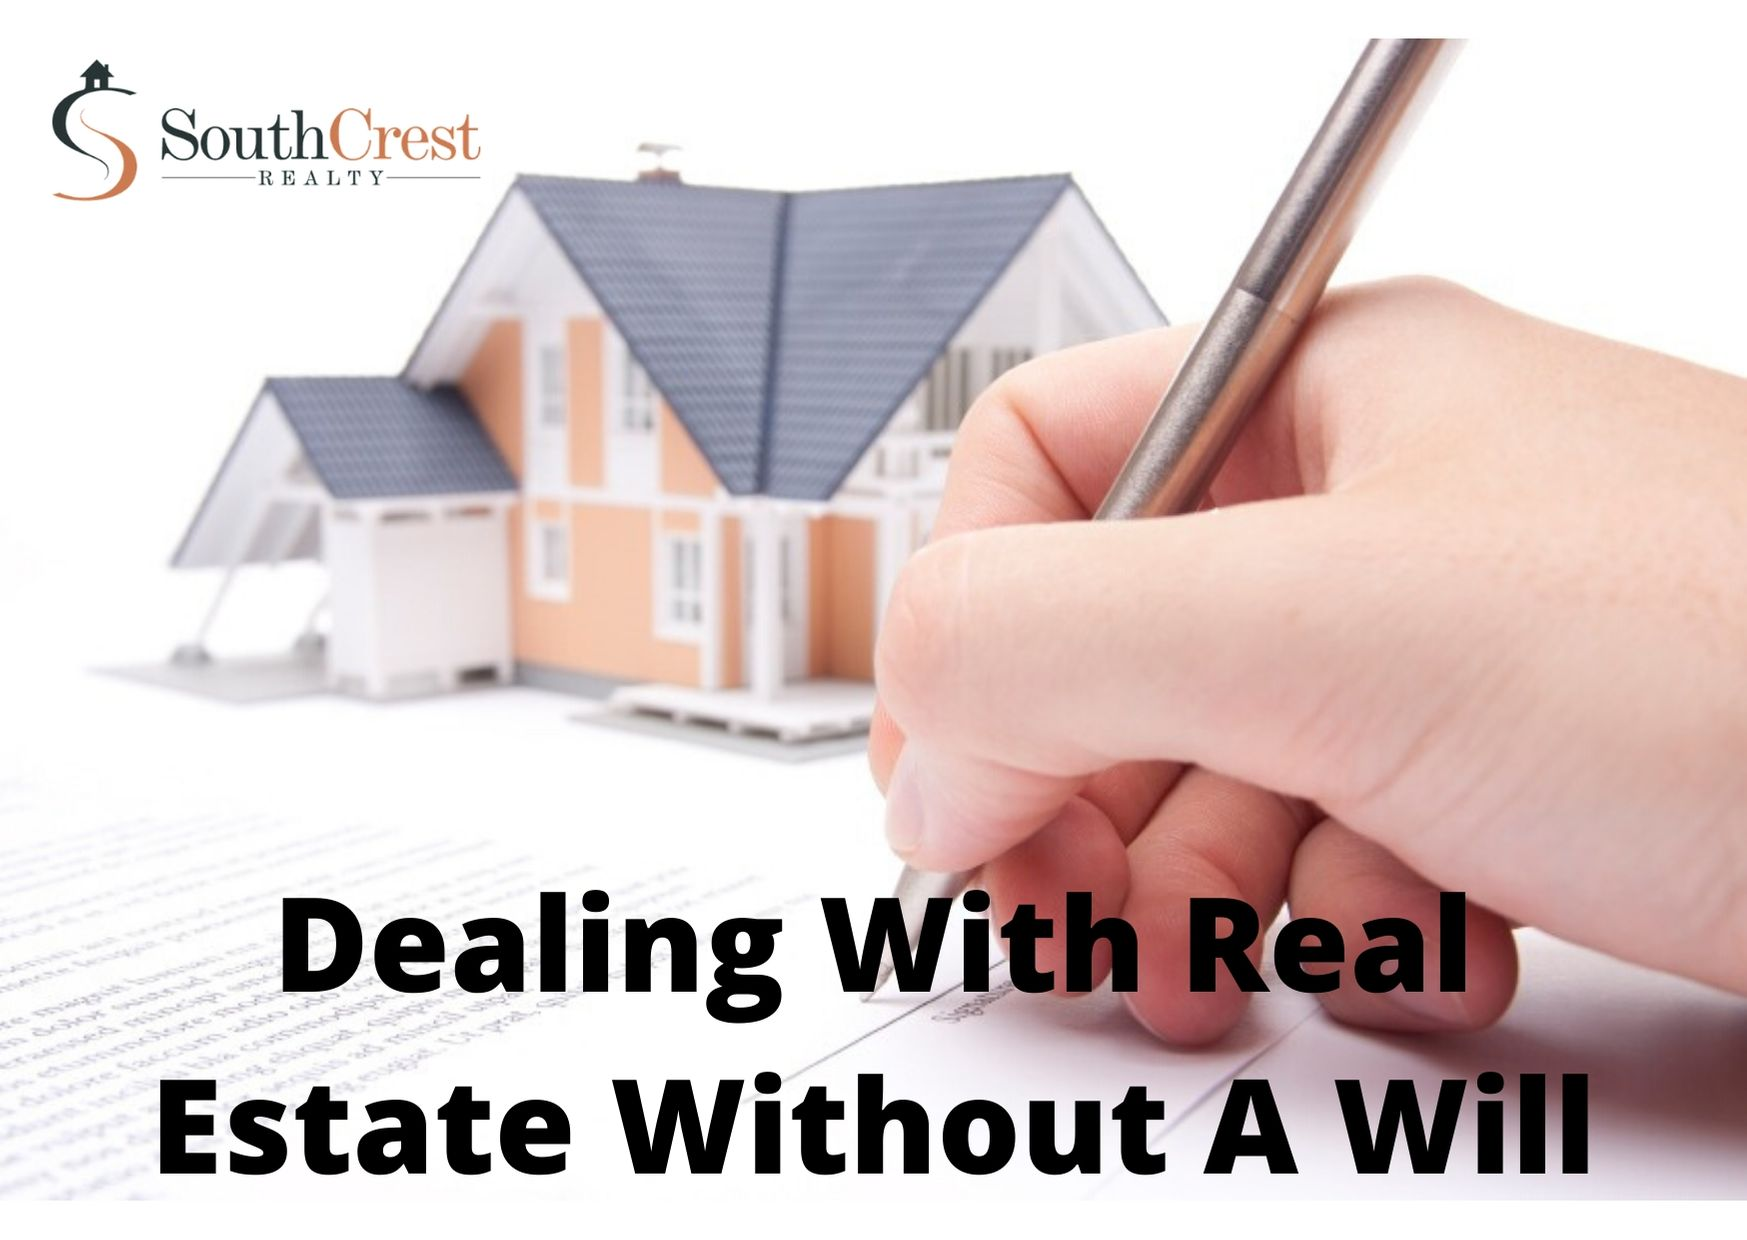 Owning a Real Estate with No Will